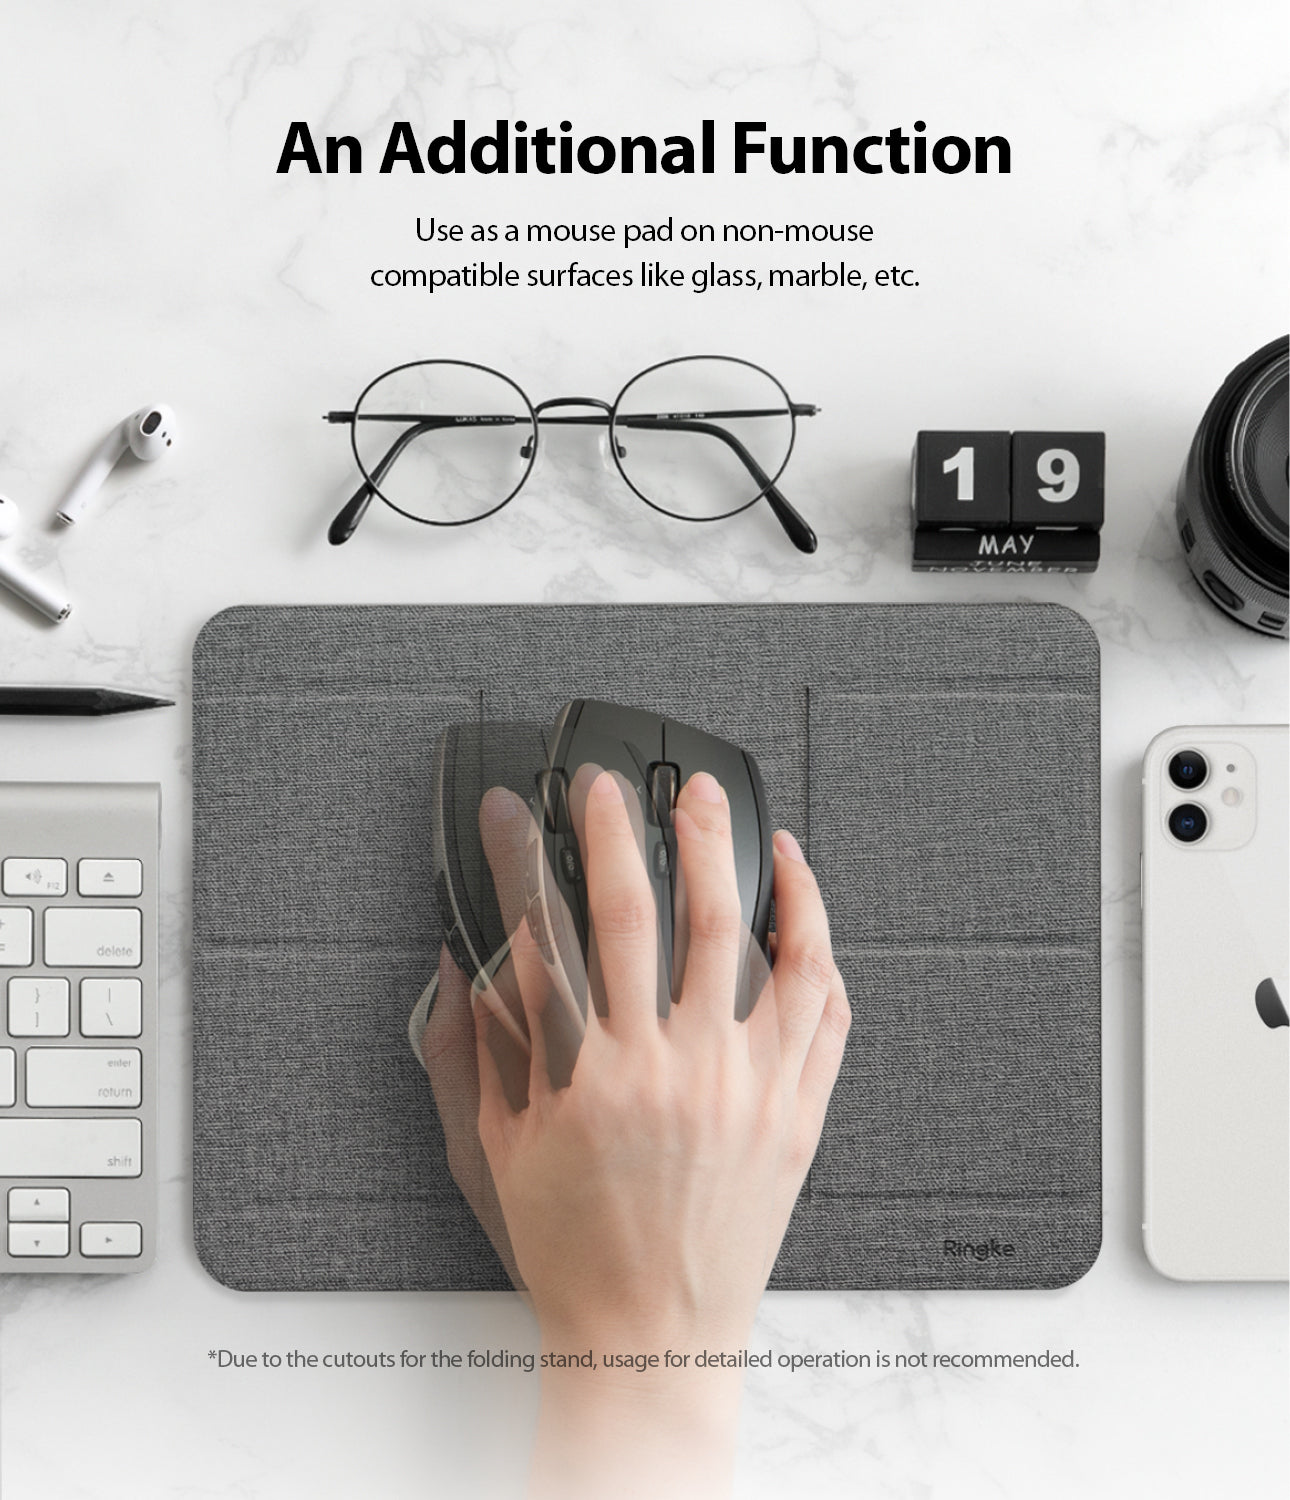 additional fuction: use it as a mousepad